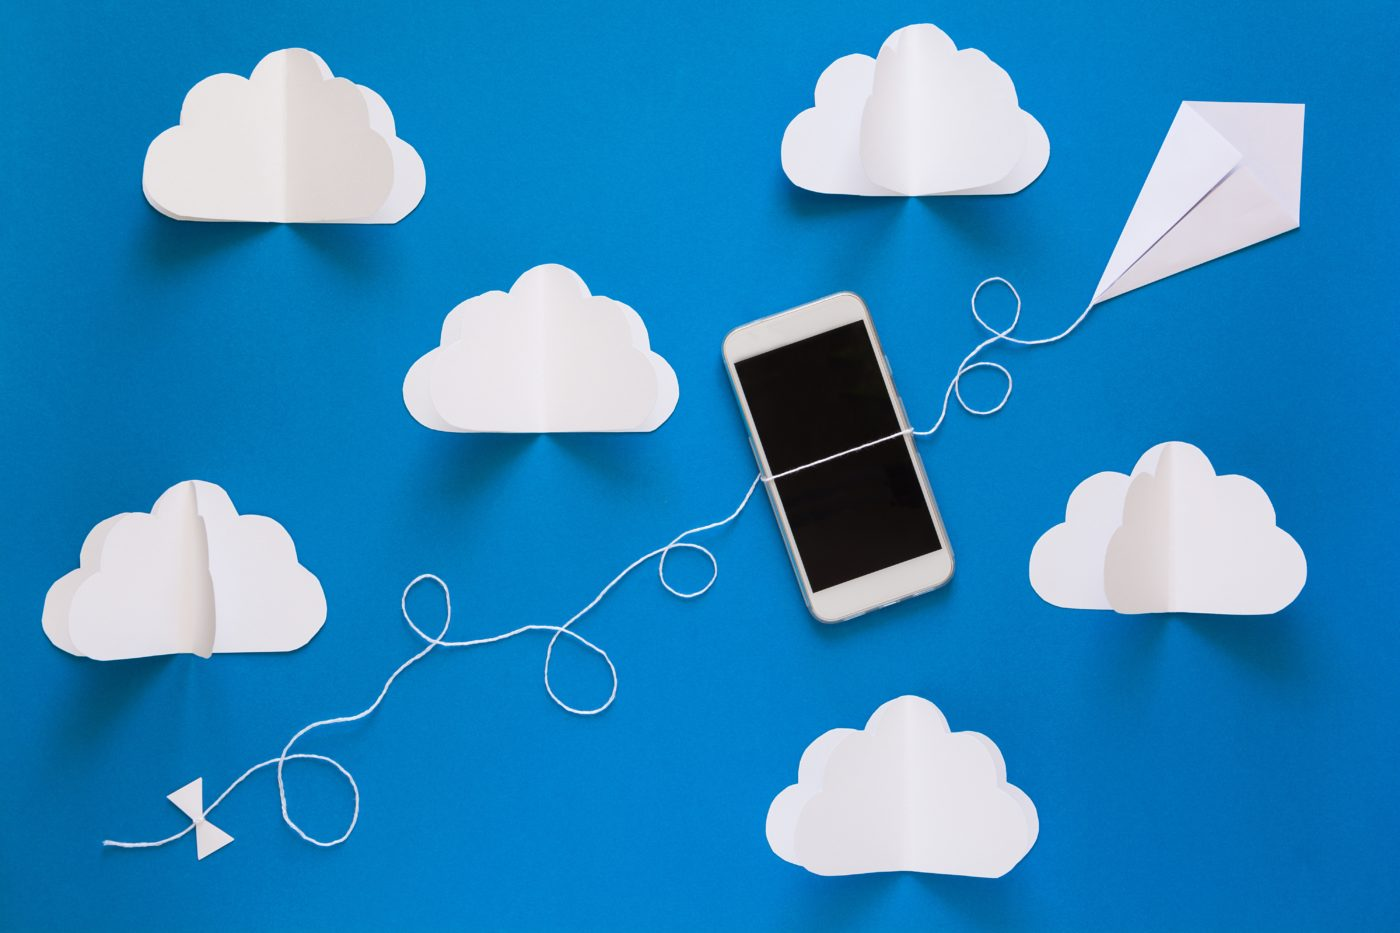 the future of IT is cloud computing